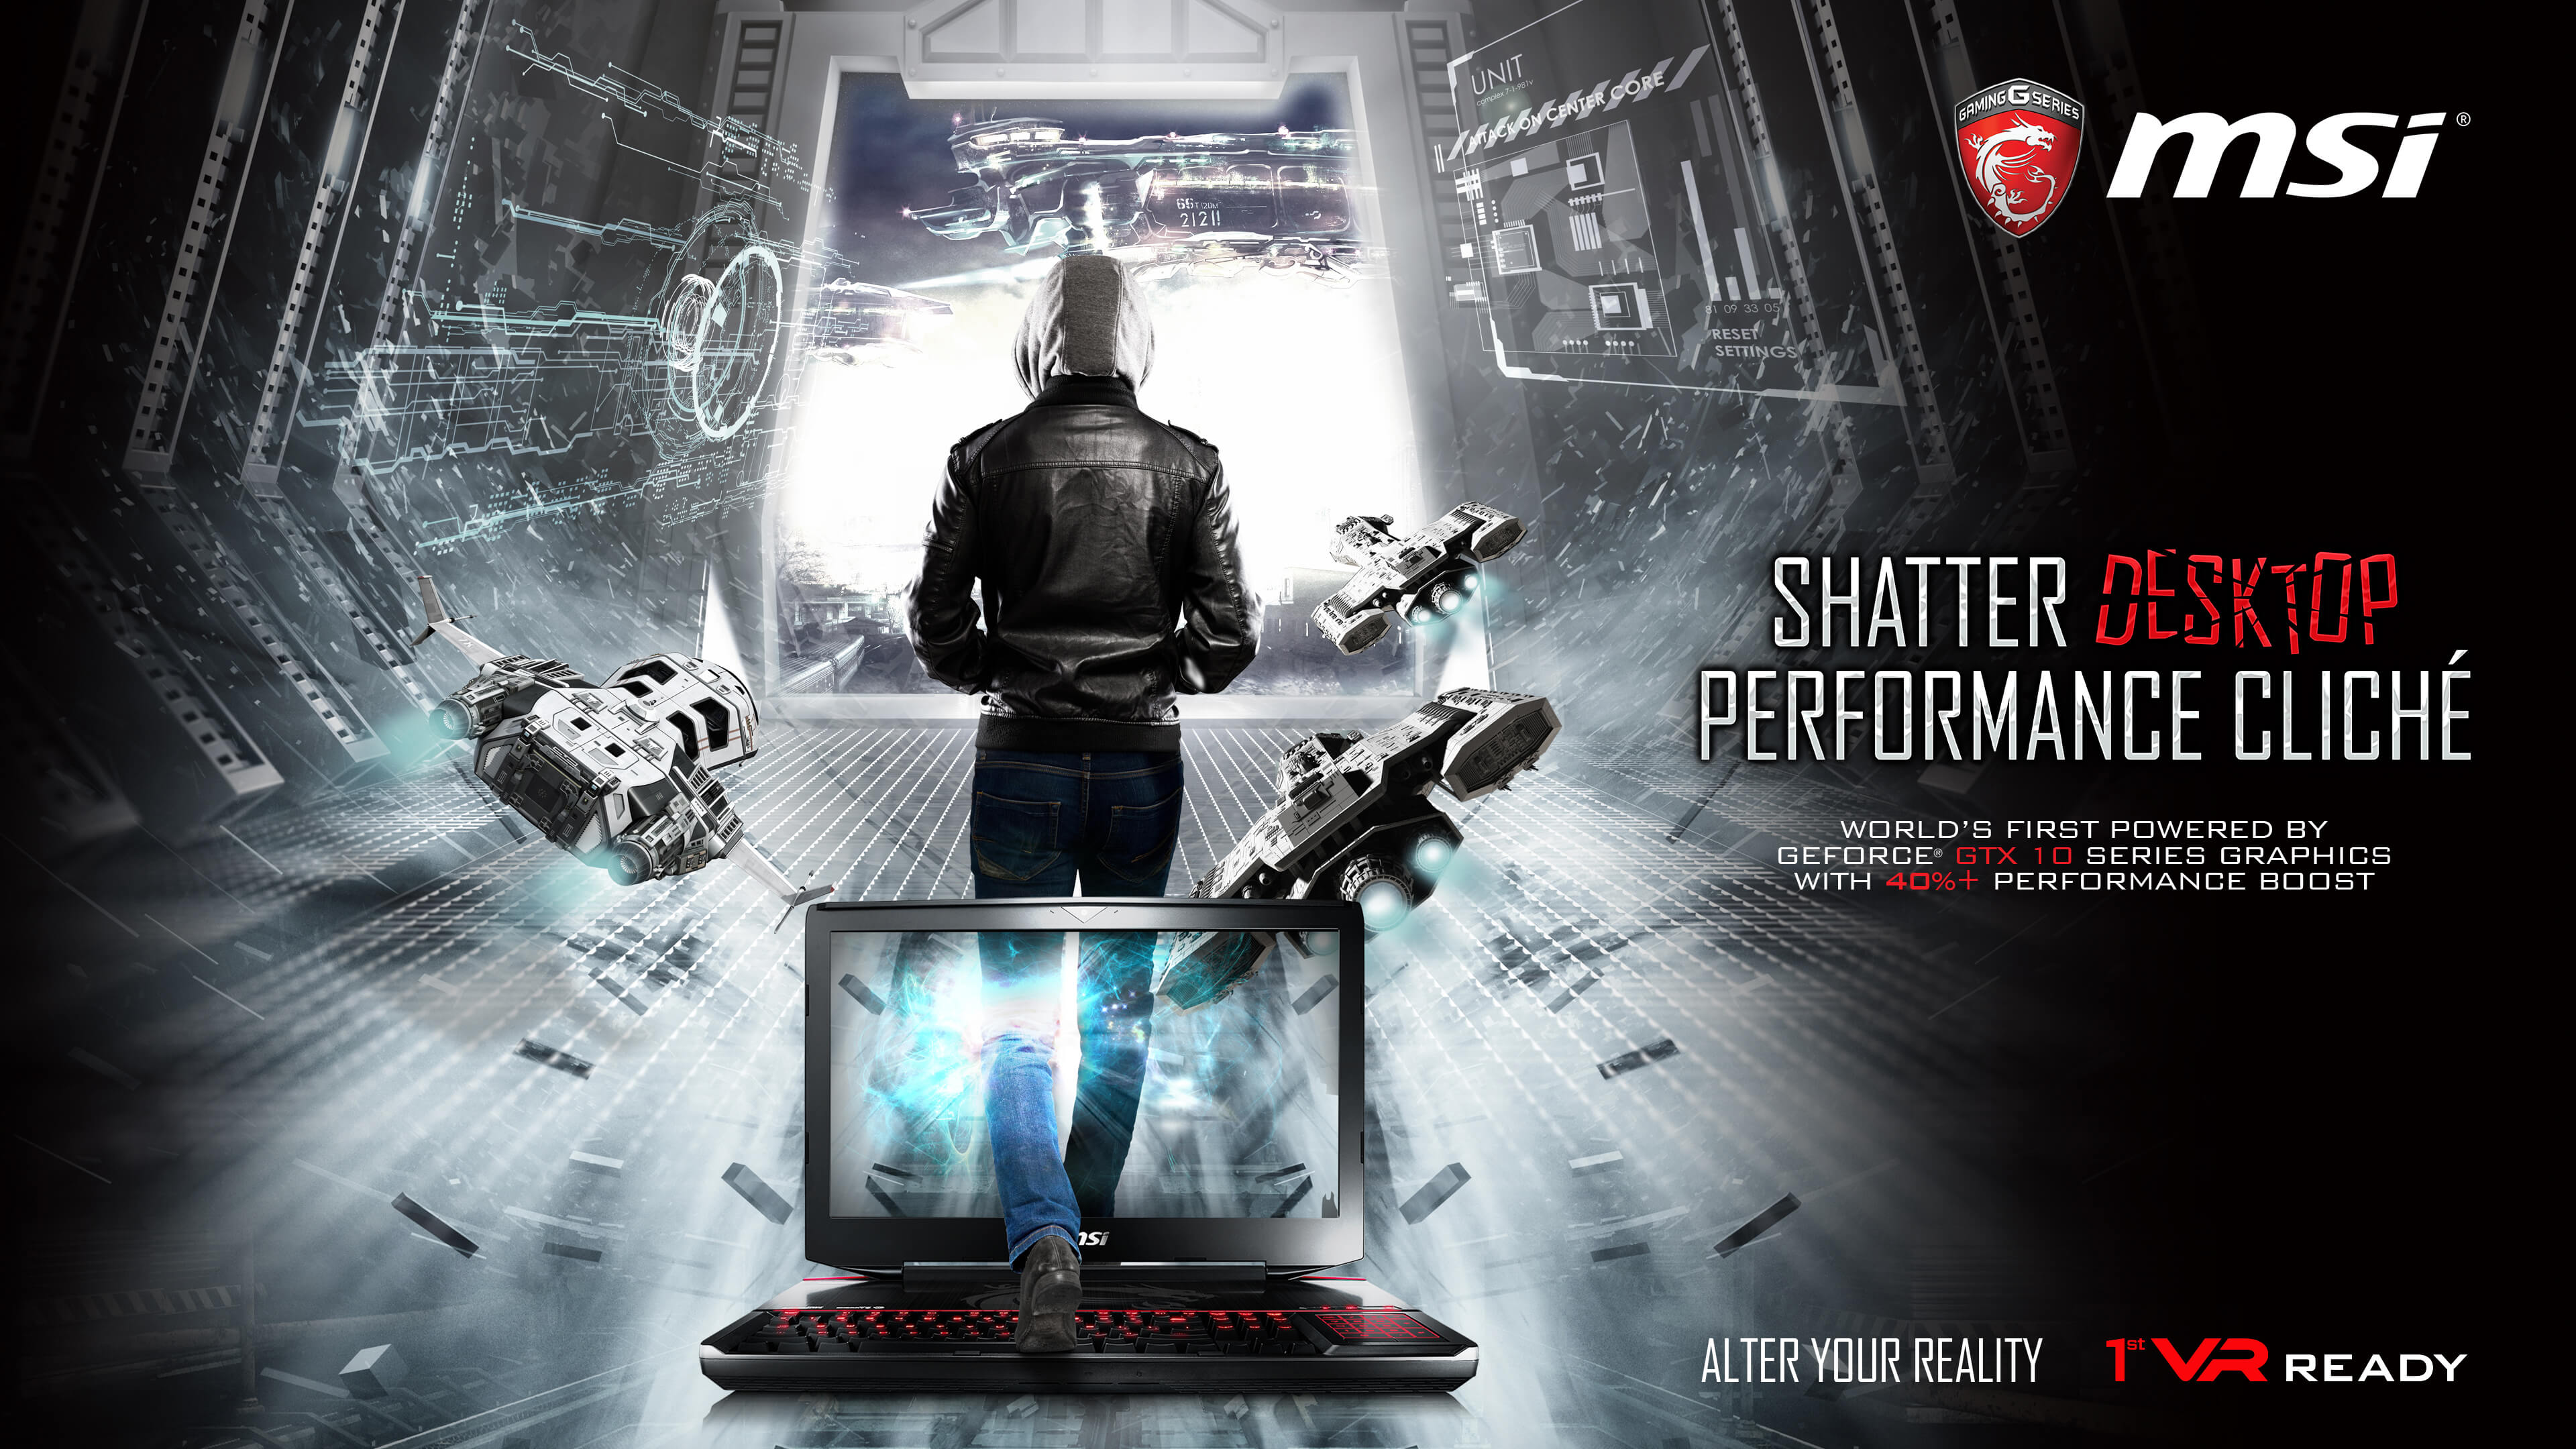 Shatter Desktop Performance Clich e